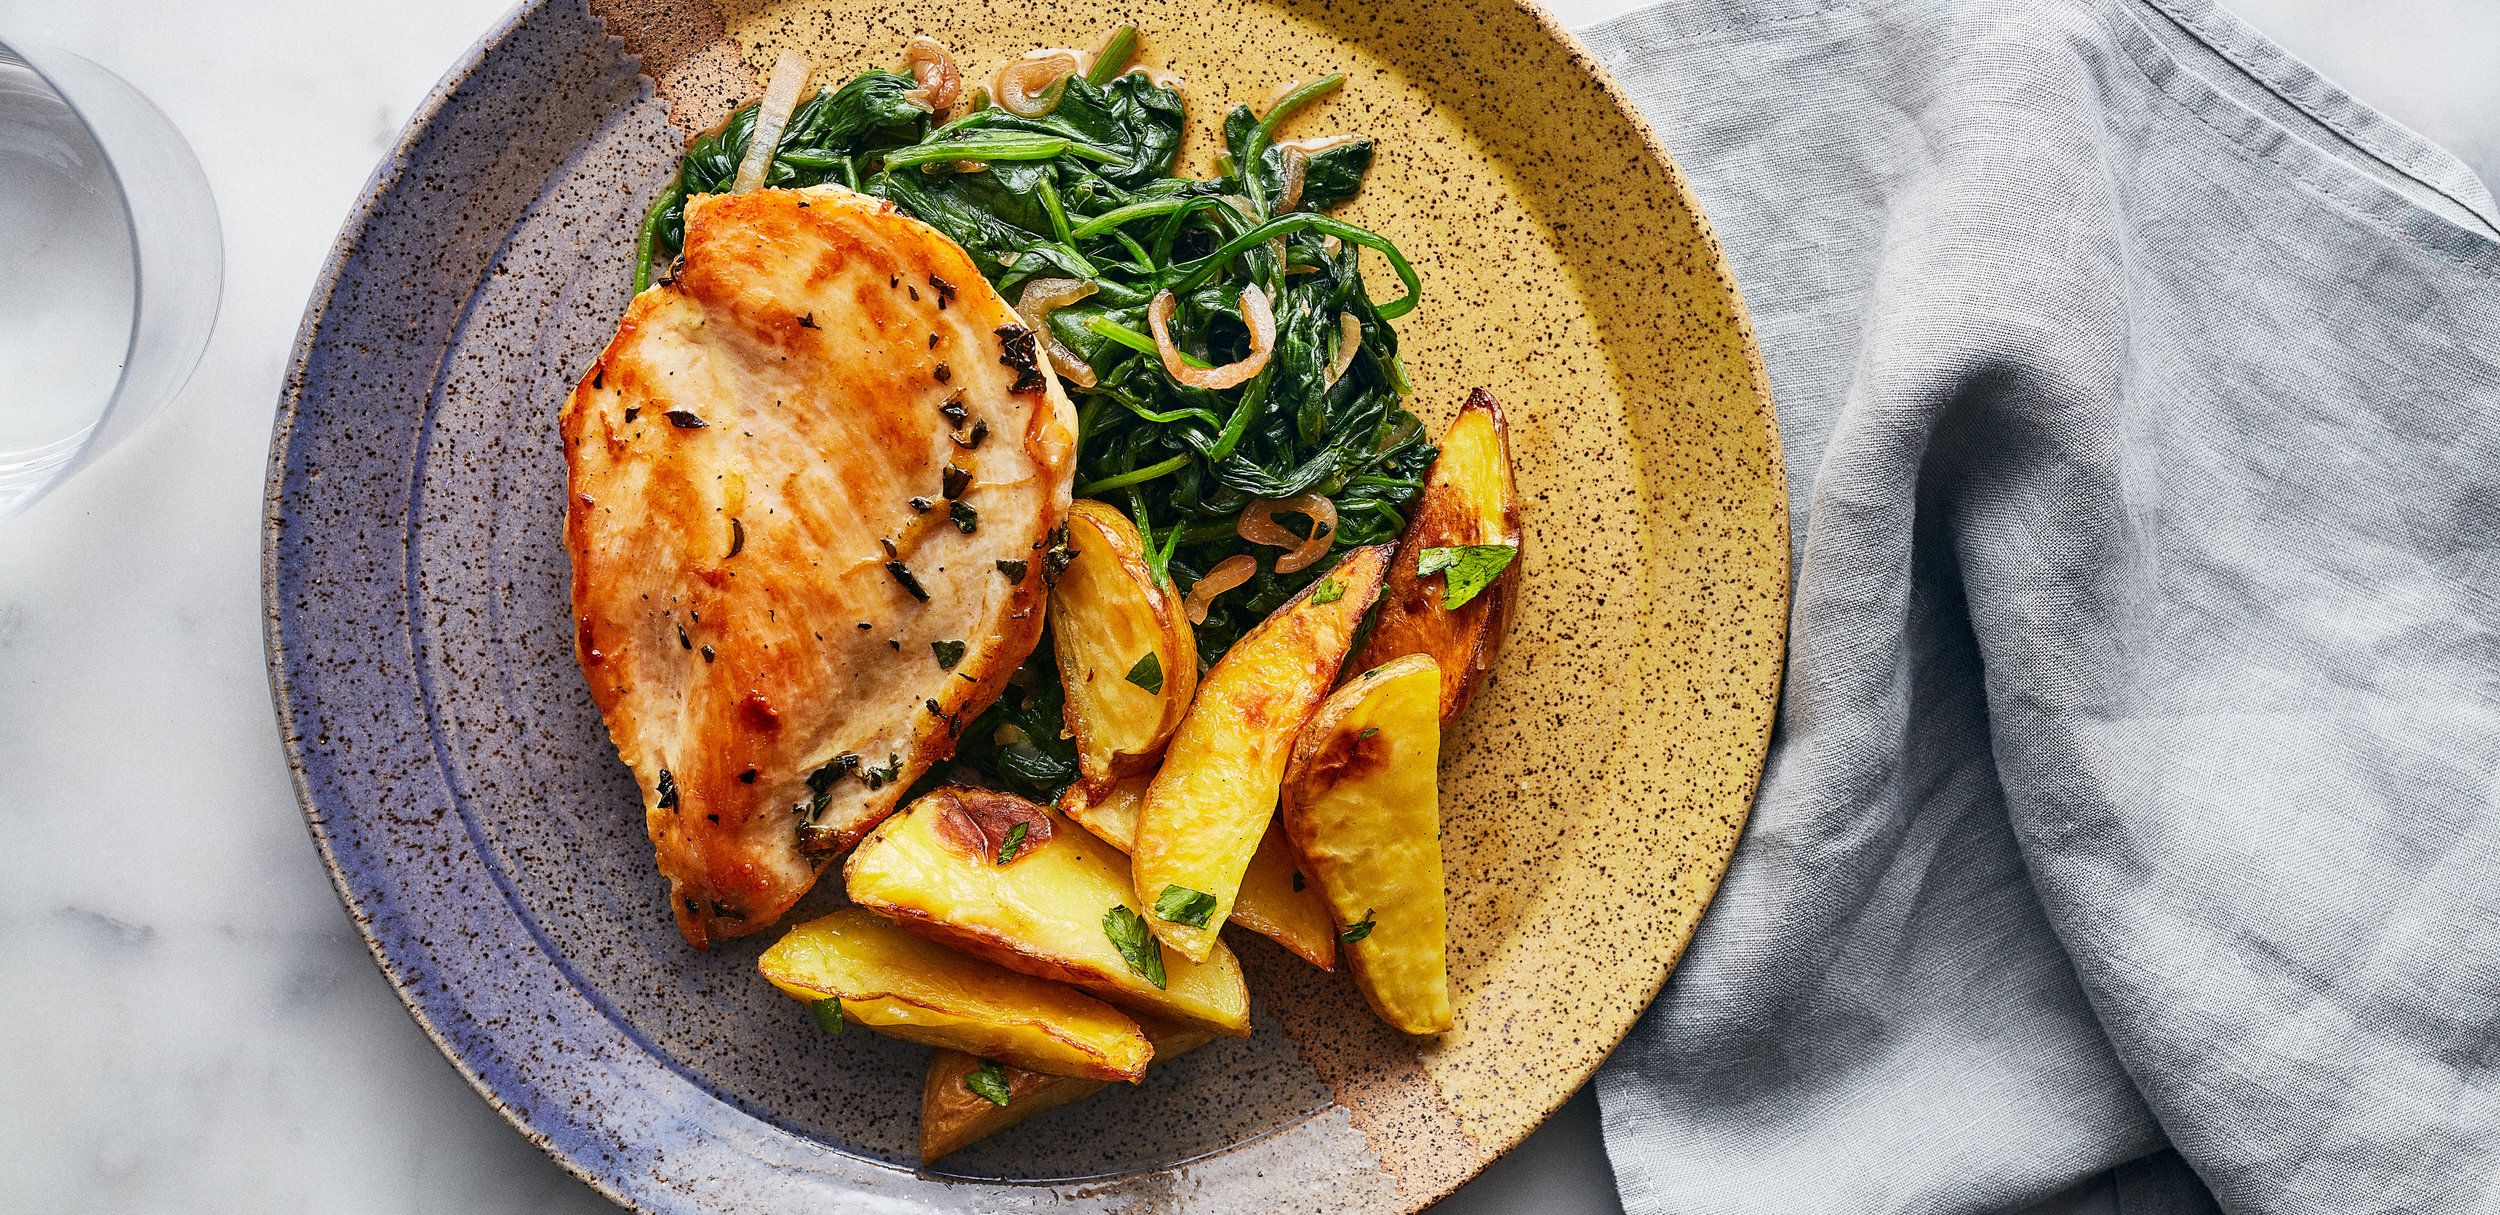 Oregano Chicken with Sautéed Spinach and Lemon Potatoes — 0017 — HERO.jpg